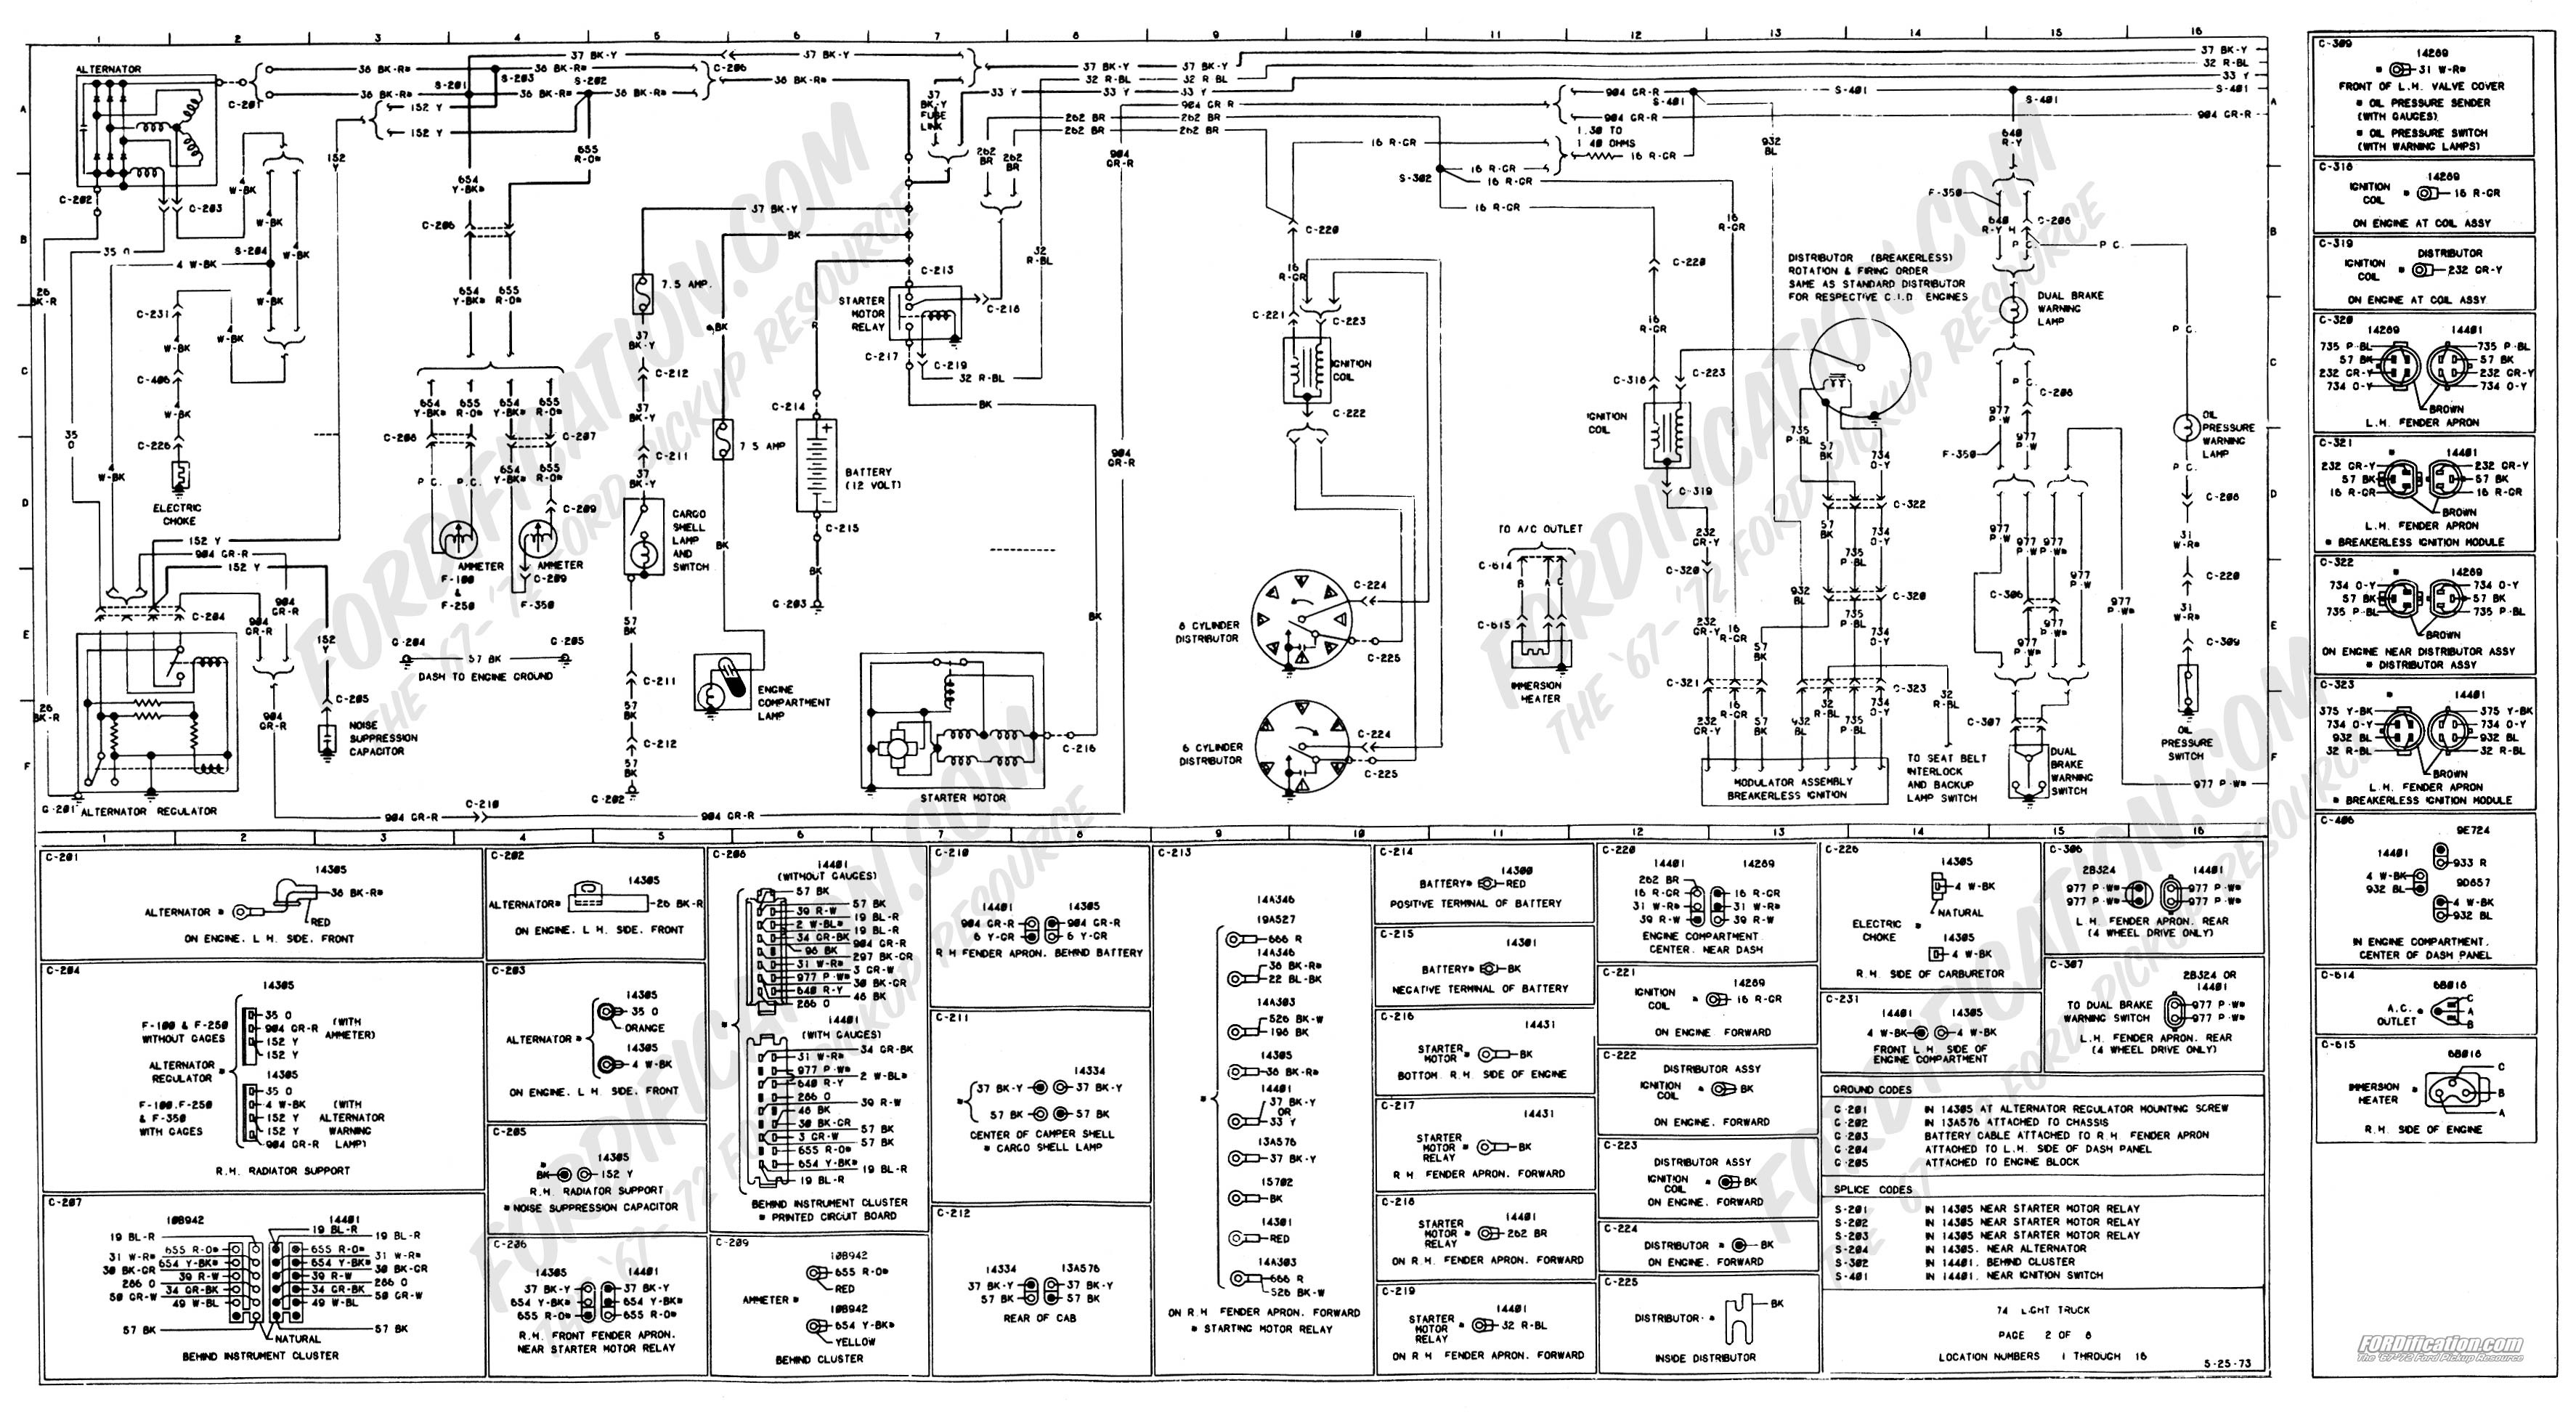 1973 ford f100 wiring harness diagram wiring diagram